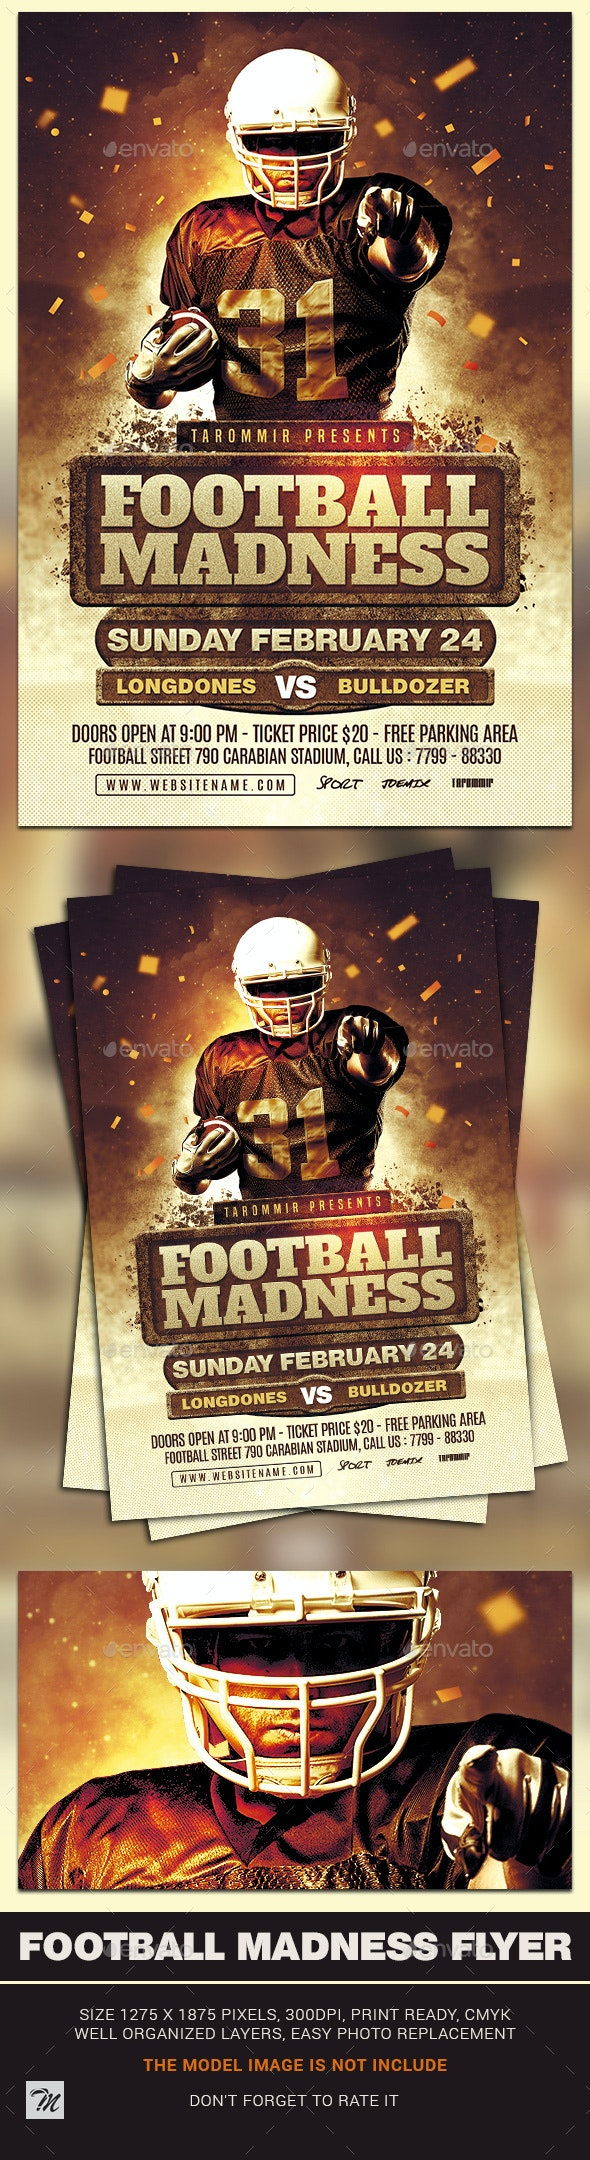 Football Madness Flyer - Sports Events